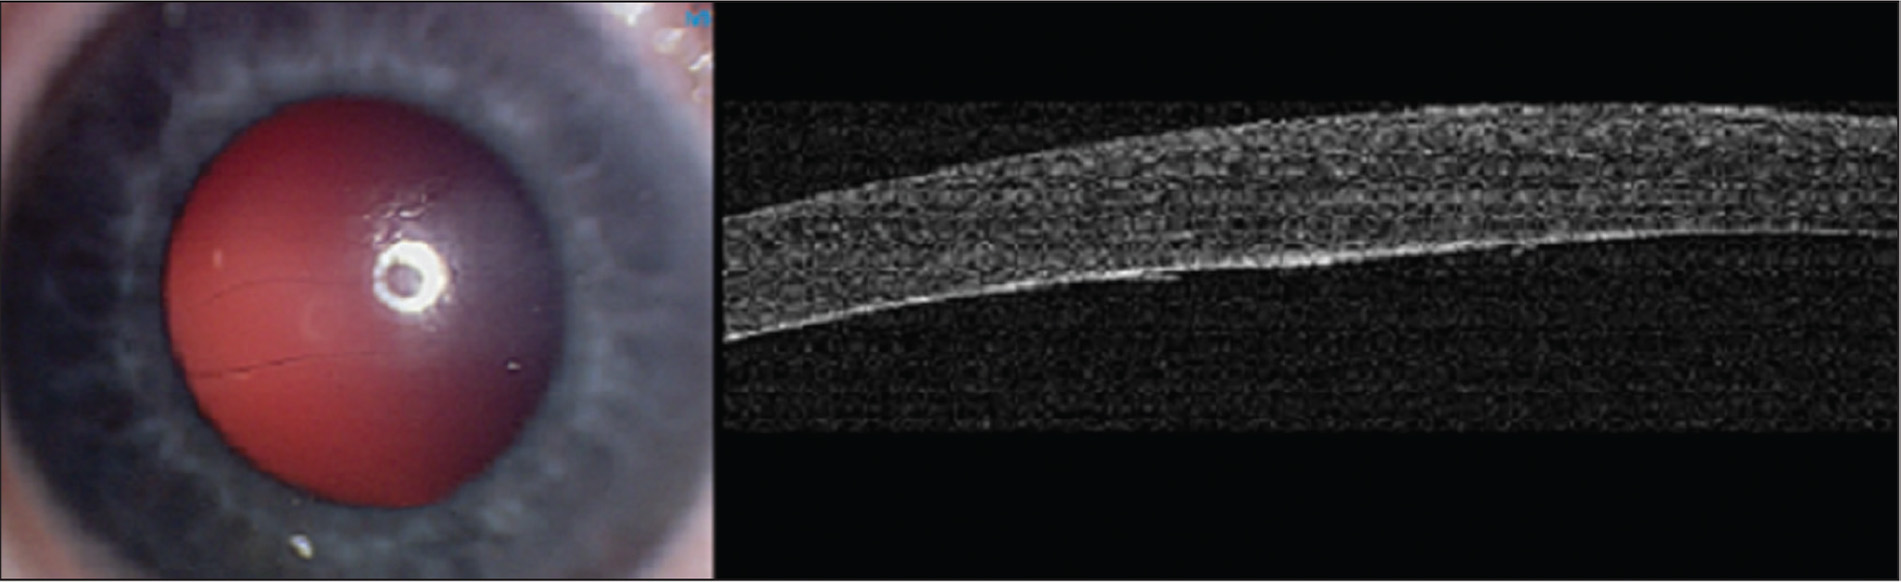 External photograph and anterior segment optical coherence tomography (AS-OCT) of patient 1. Horizontal Haab striae are seen involving the visual axis (left). AS-OCT showing partial cross-section of the Haab striae demonstrated the sharp edges of the broken Descemet's membrane. Note the localized stromal edema at the area between the broken Descemet flaps (right).